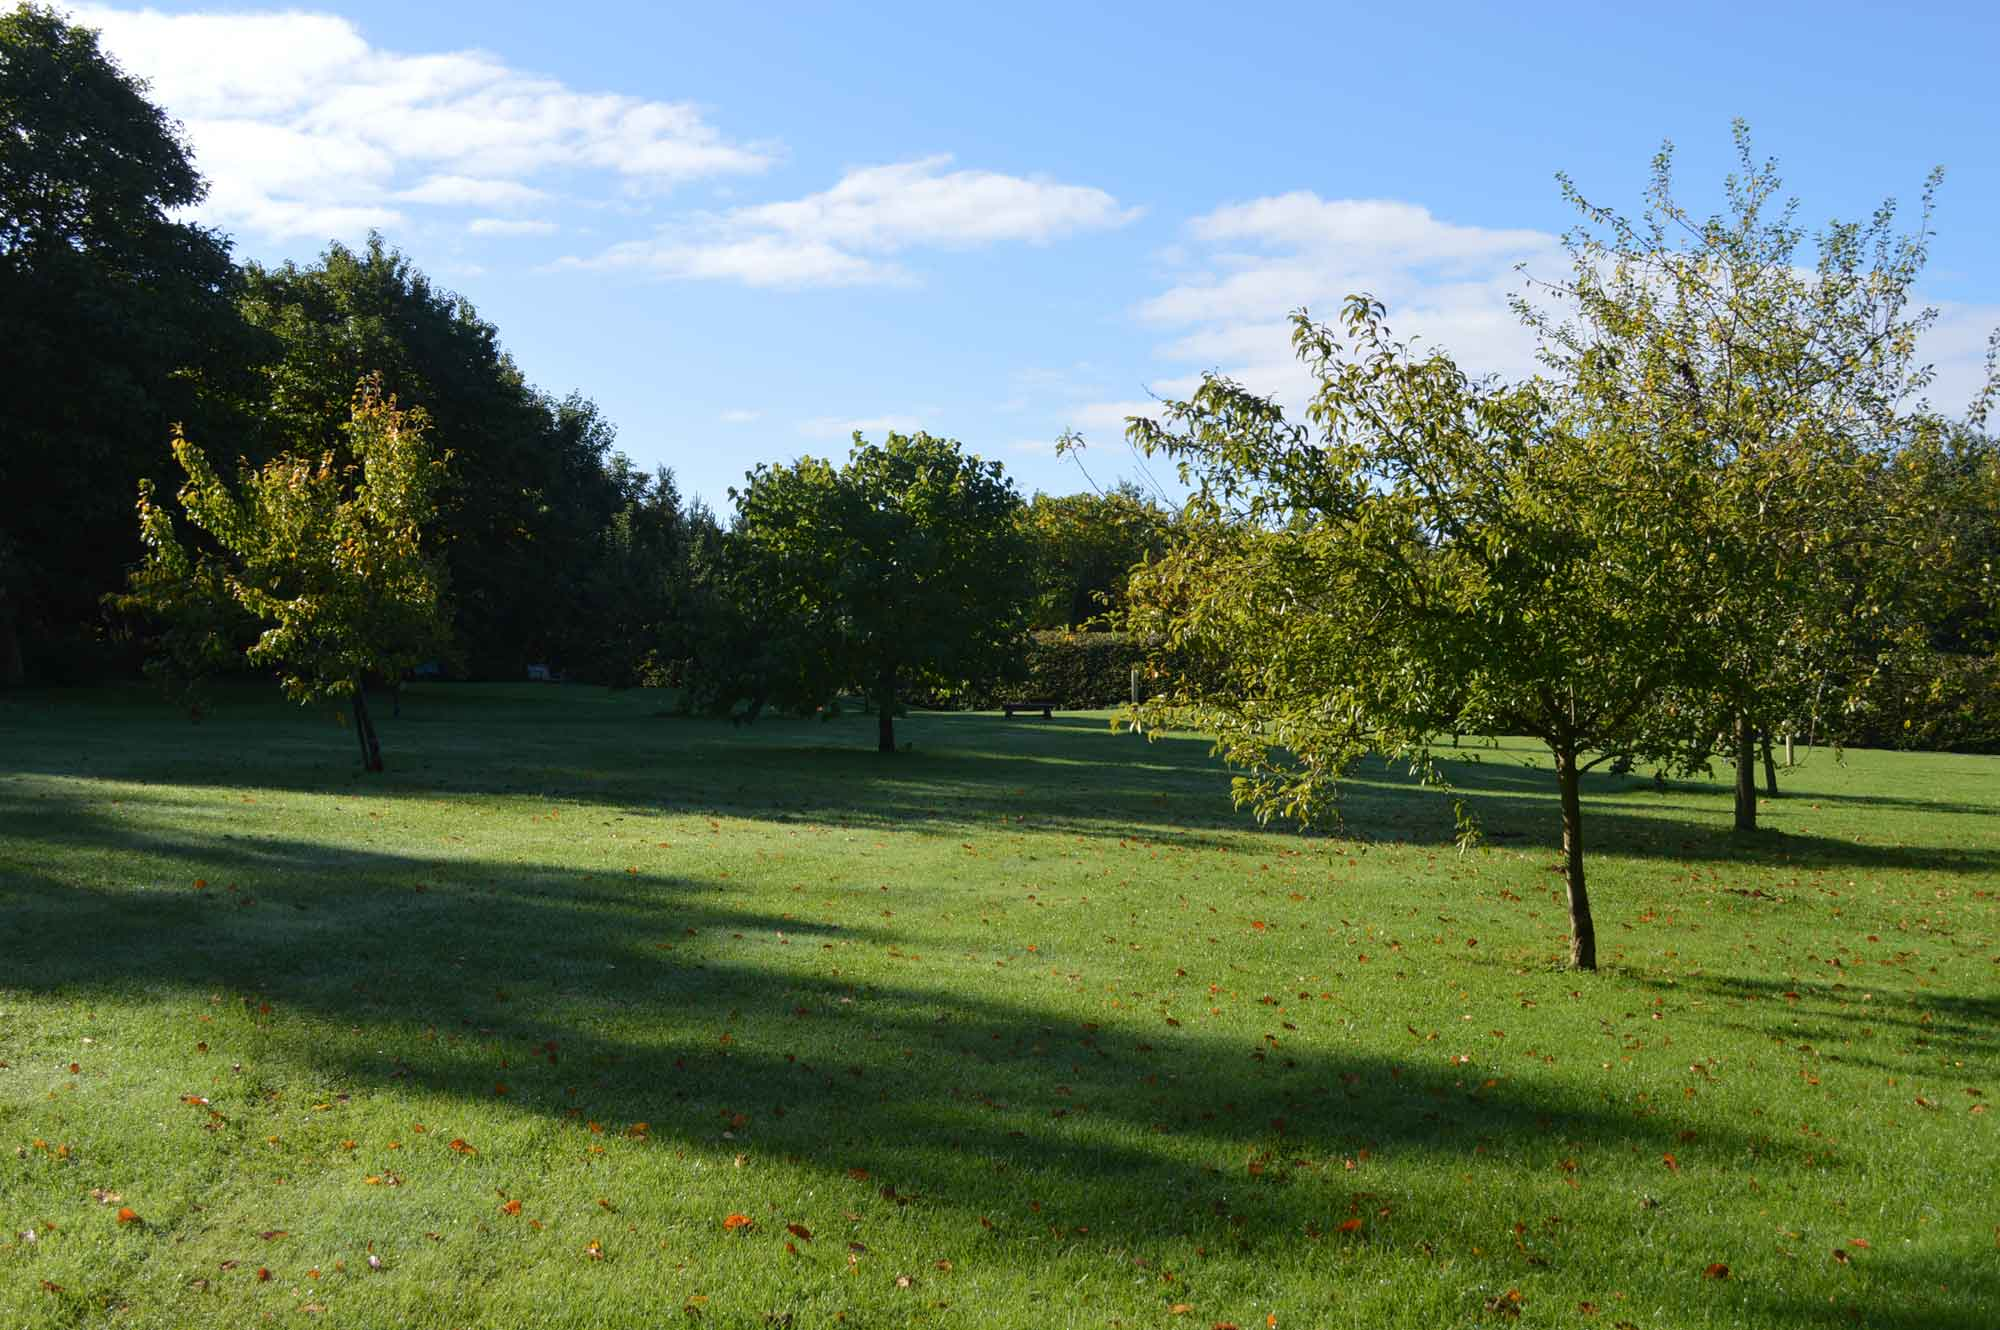 Heath Farm Holiday Cottages Orchard in the Oxfordshire Cotswolds